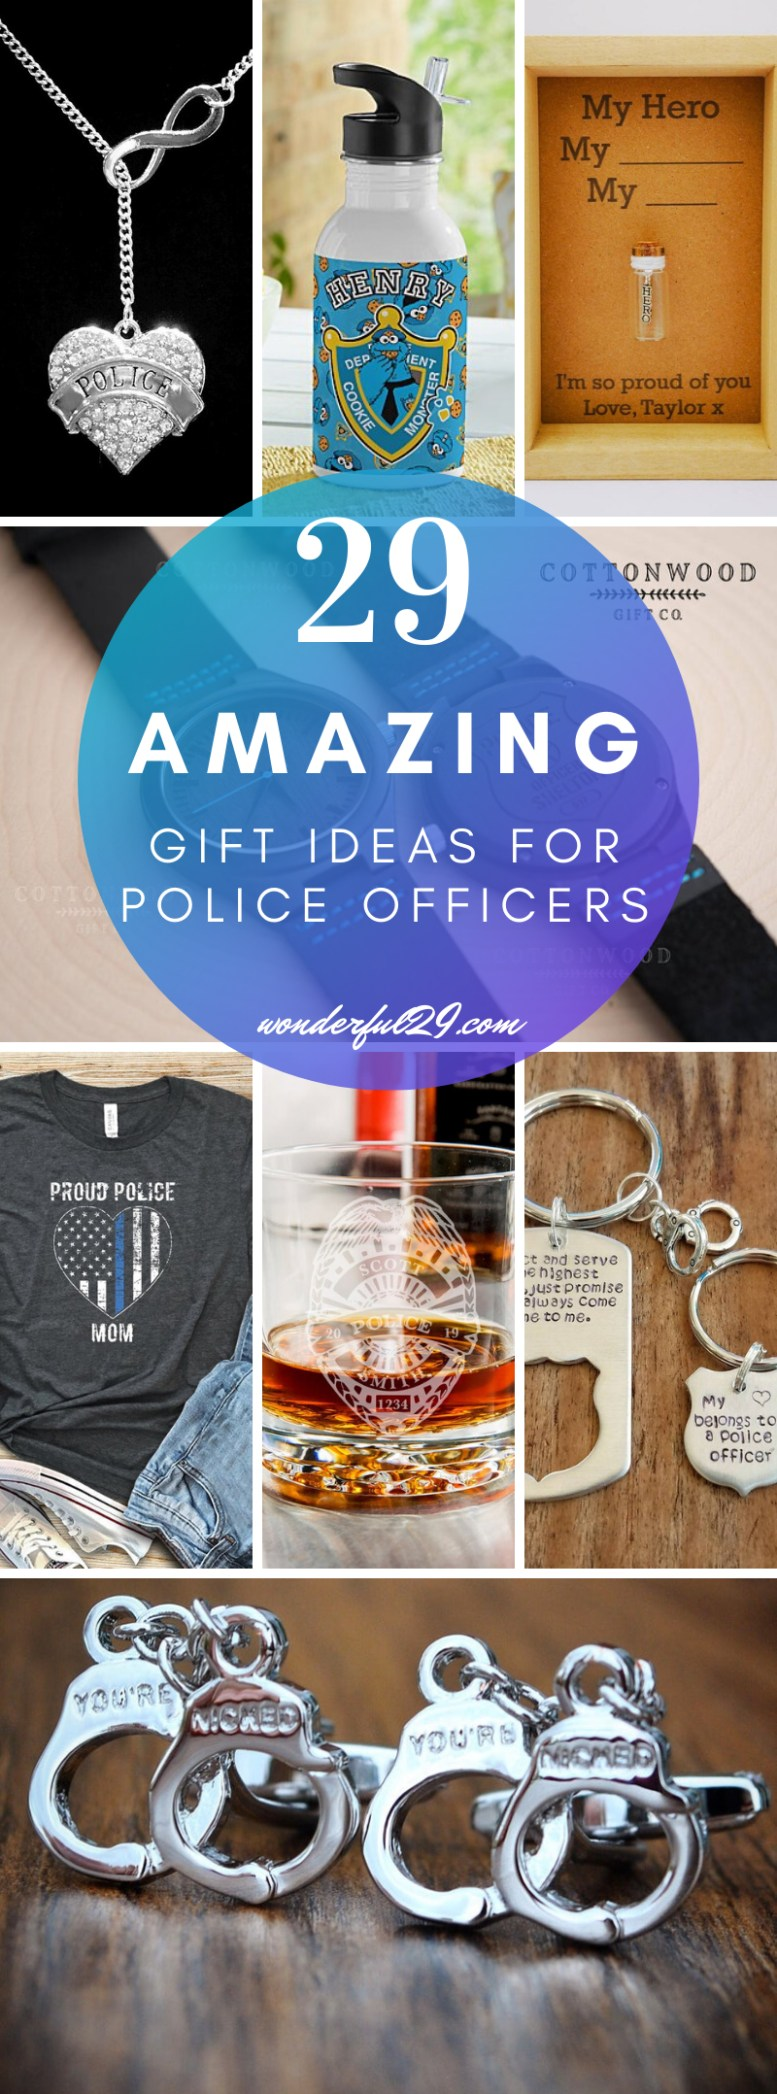 Best Police Gifts